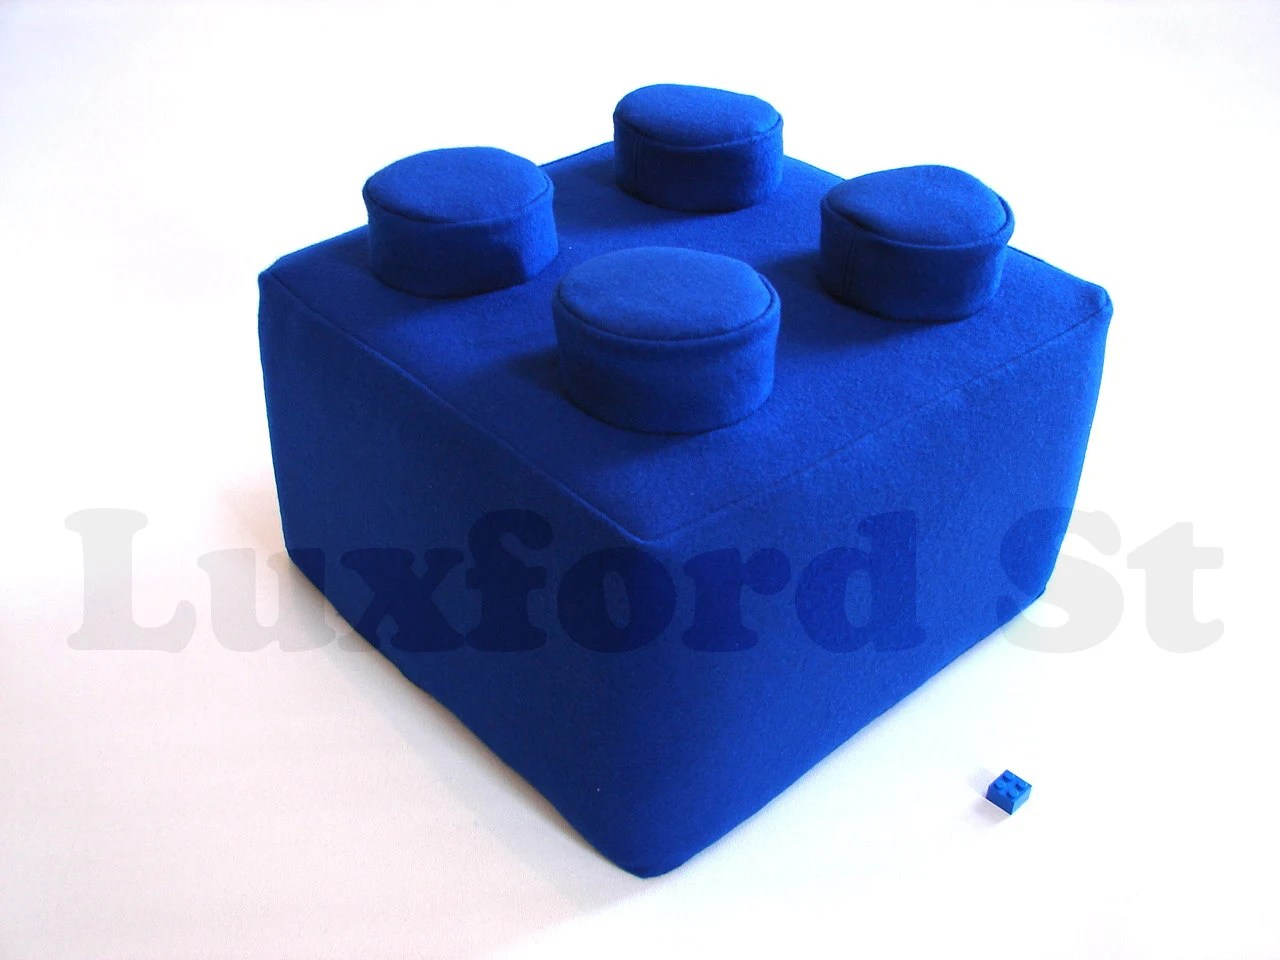 Lego Block Pillow - in Brilliant Blue